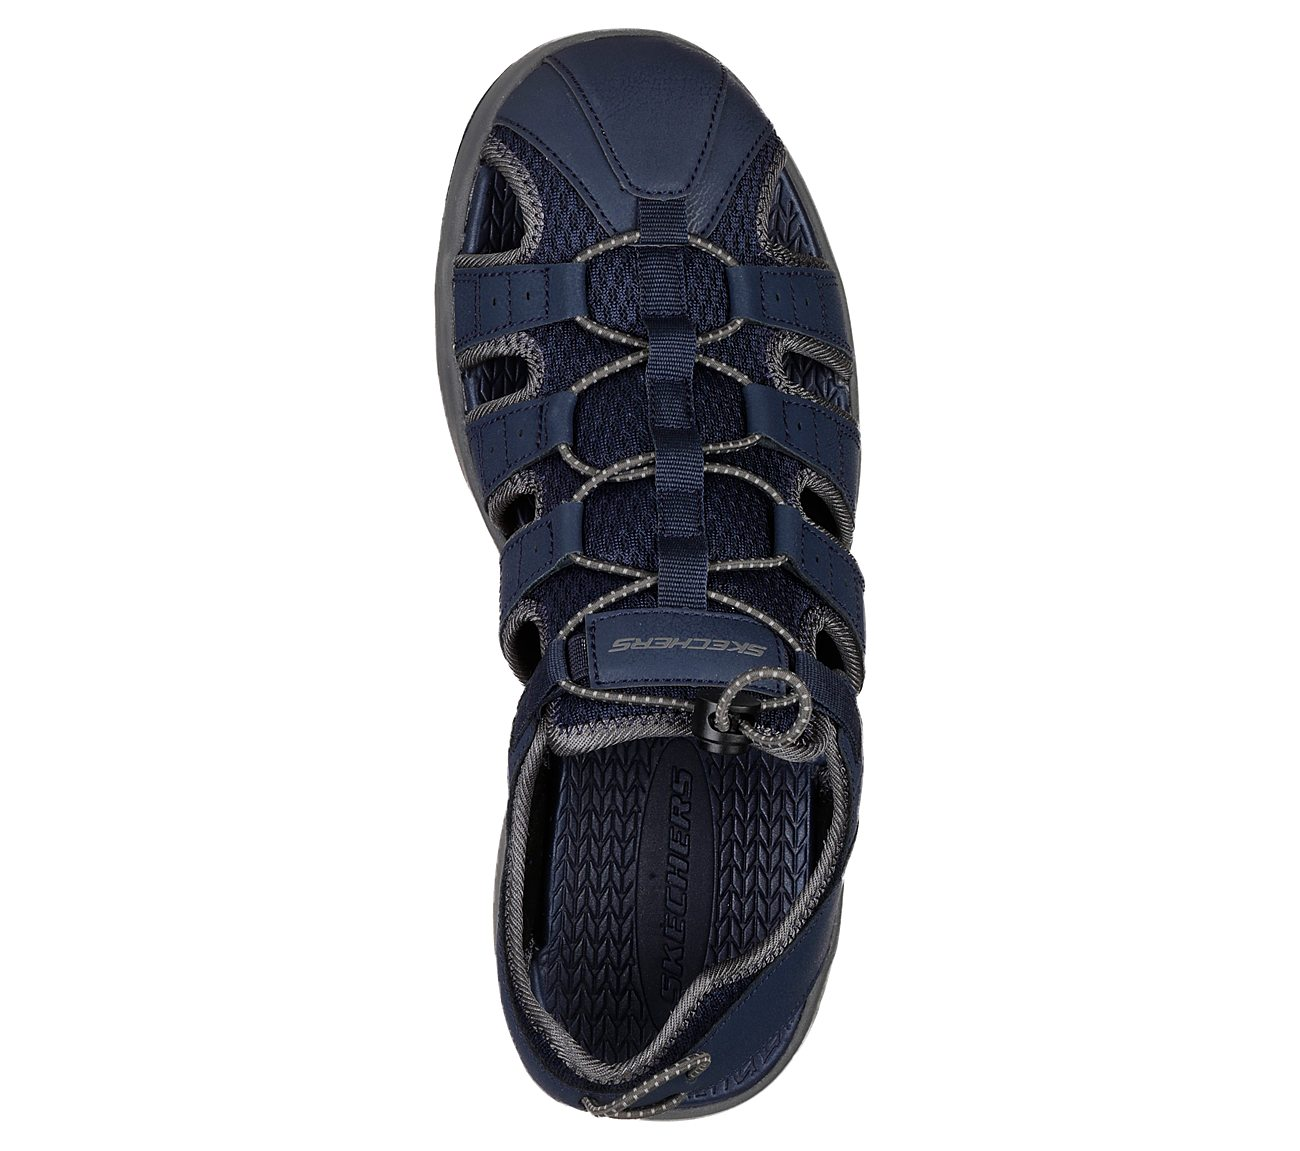 6cea7c8d44be Buy SKECHERS Melbo - Journeyman 2 USA Casuals Shoes only  60.00